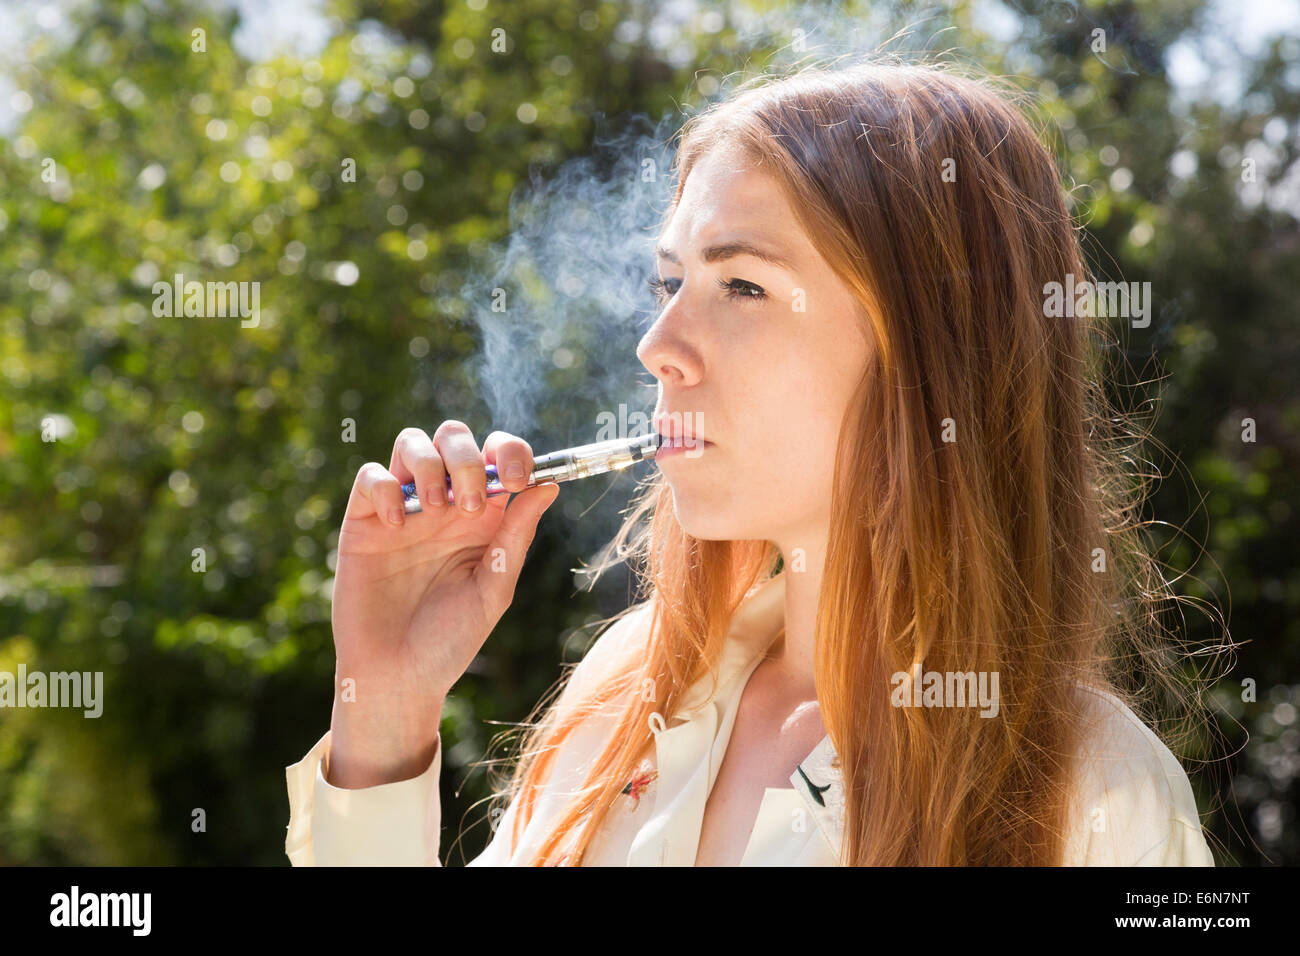 young woman smoking an electronic e-cigarette - Stock Image